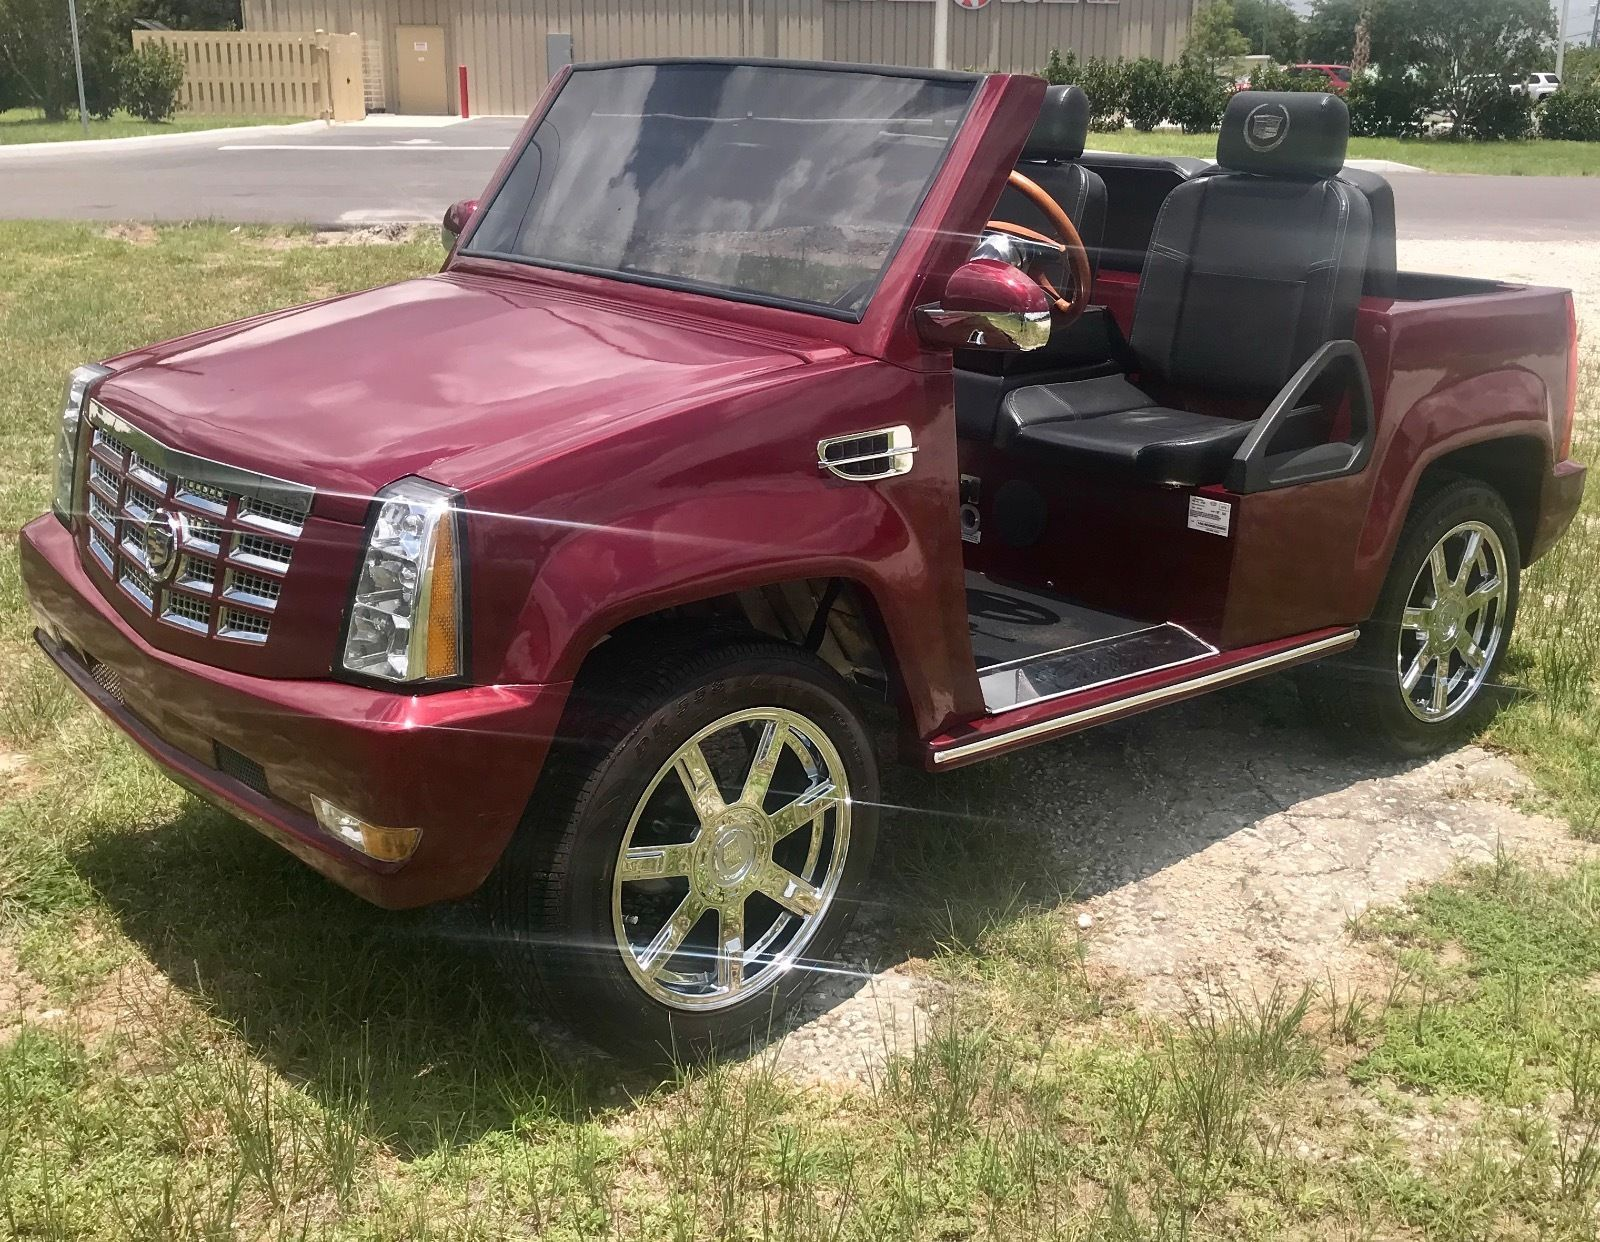 Escalade Golf Cart >> Pin On Golf Carts For Sale